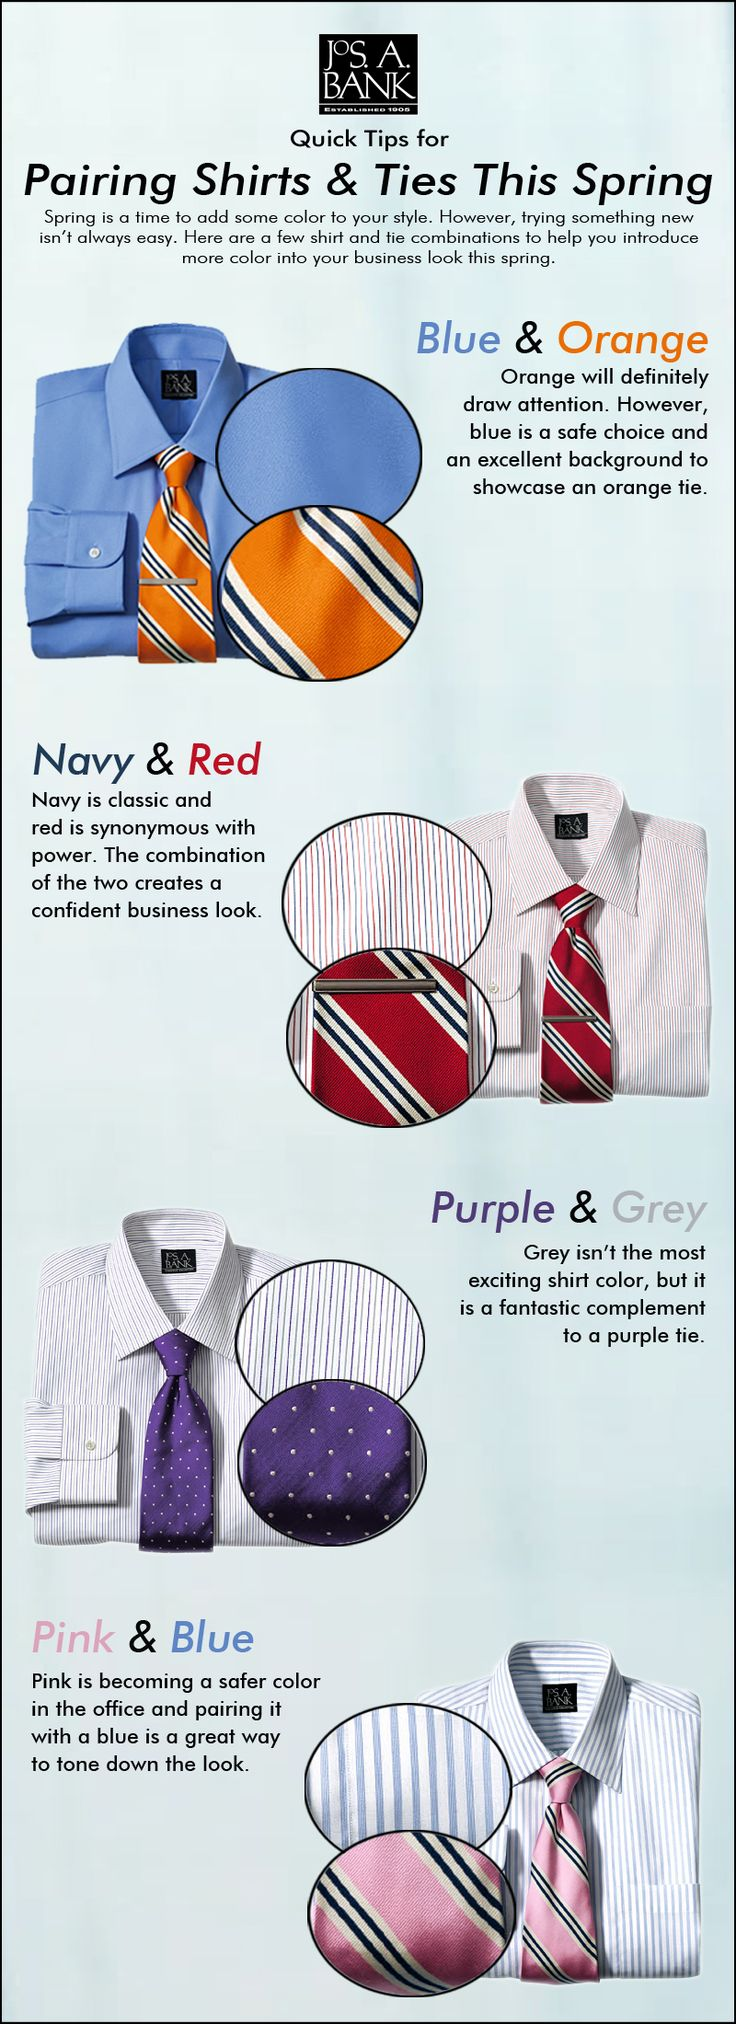 A Few Ideas To Help You Add Color To Your Business Look This Spring